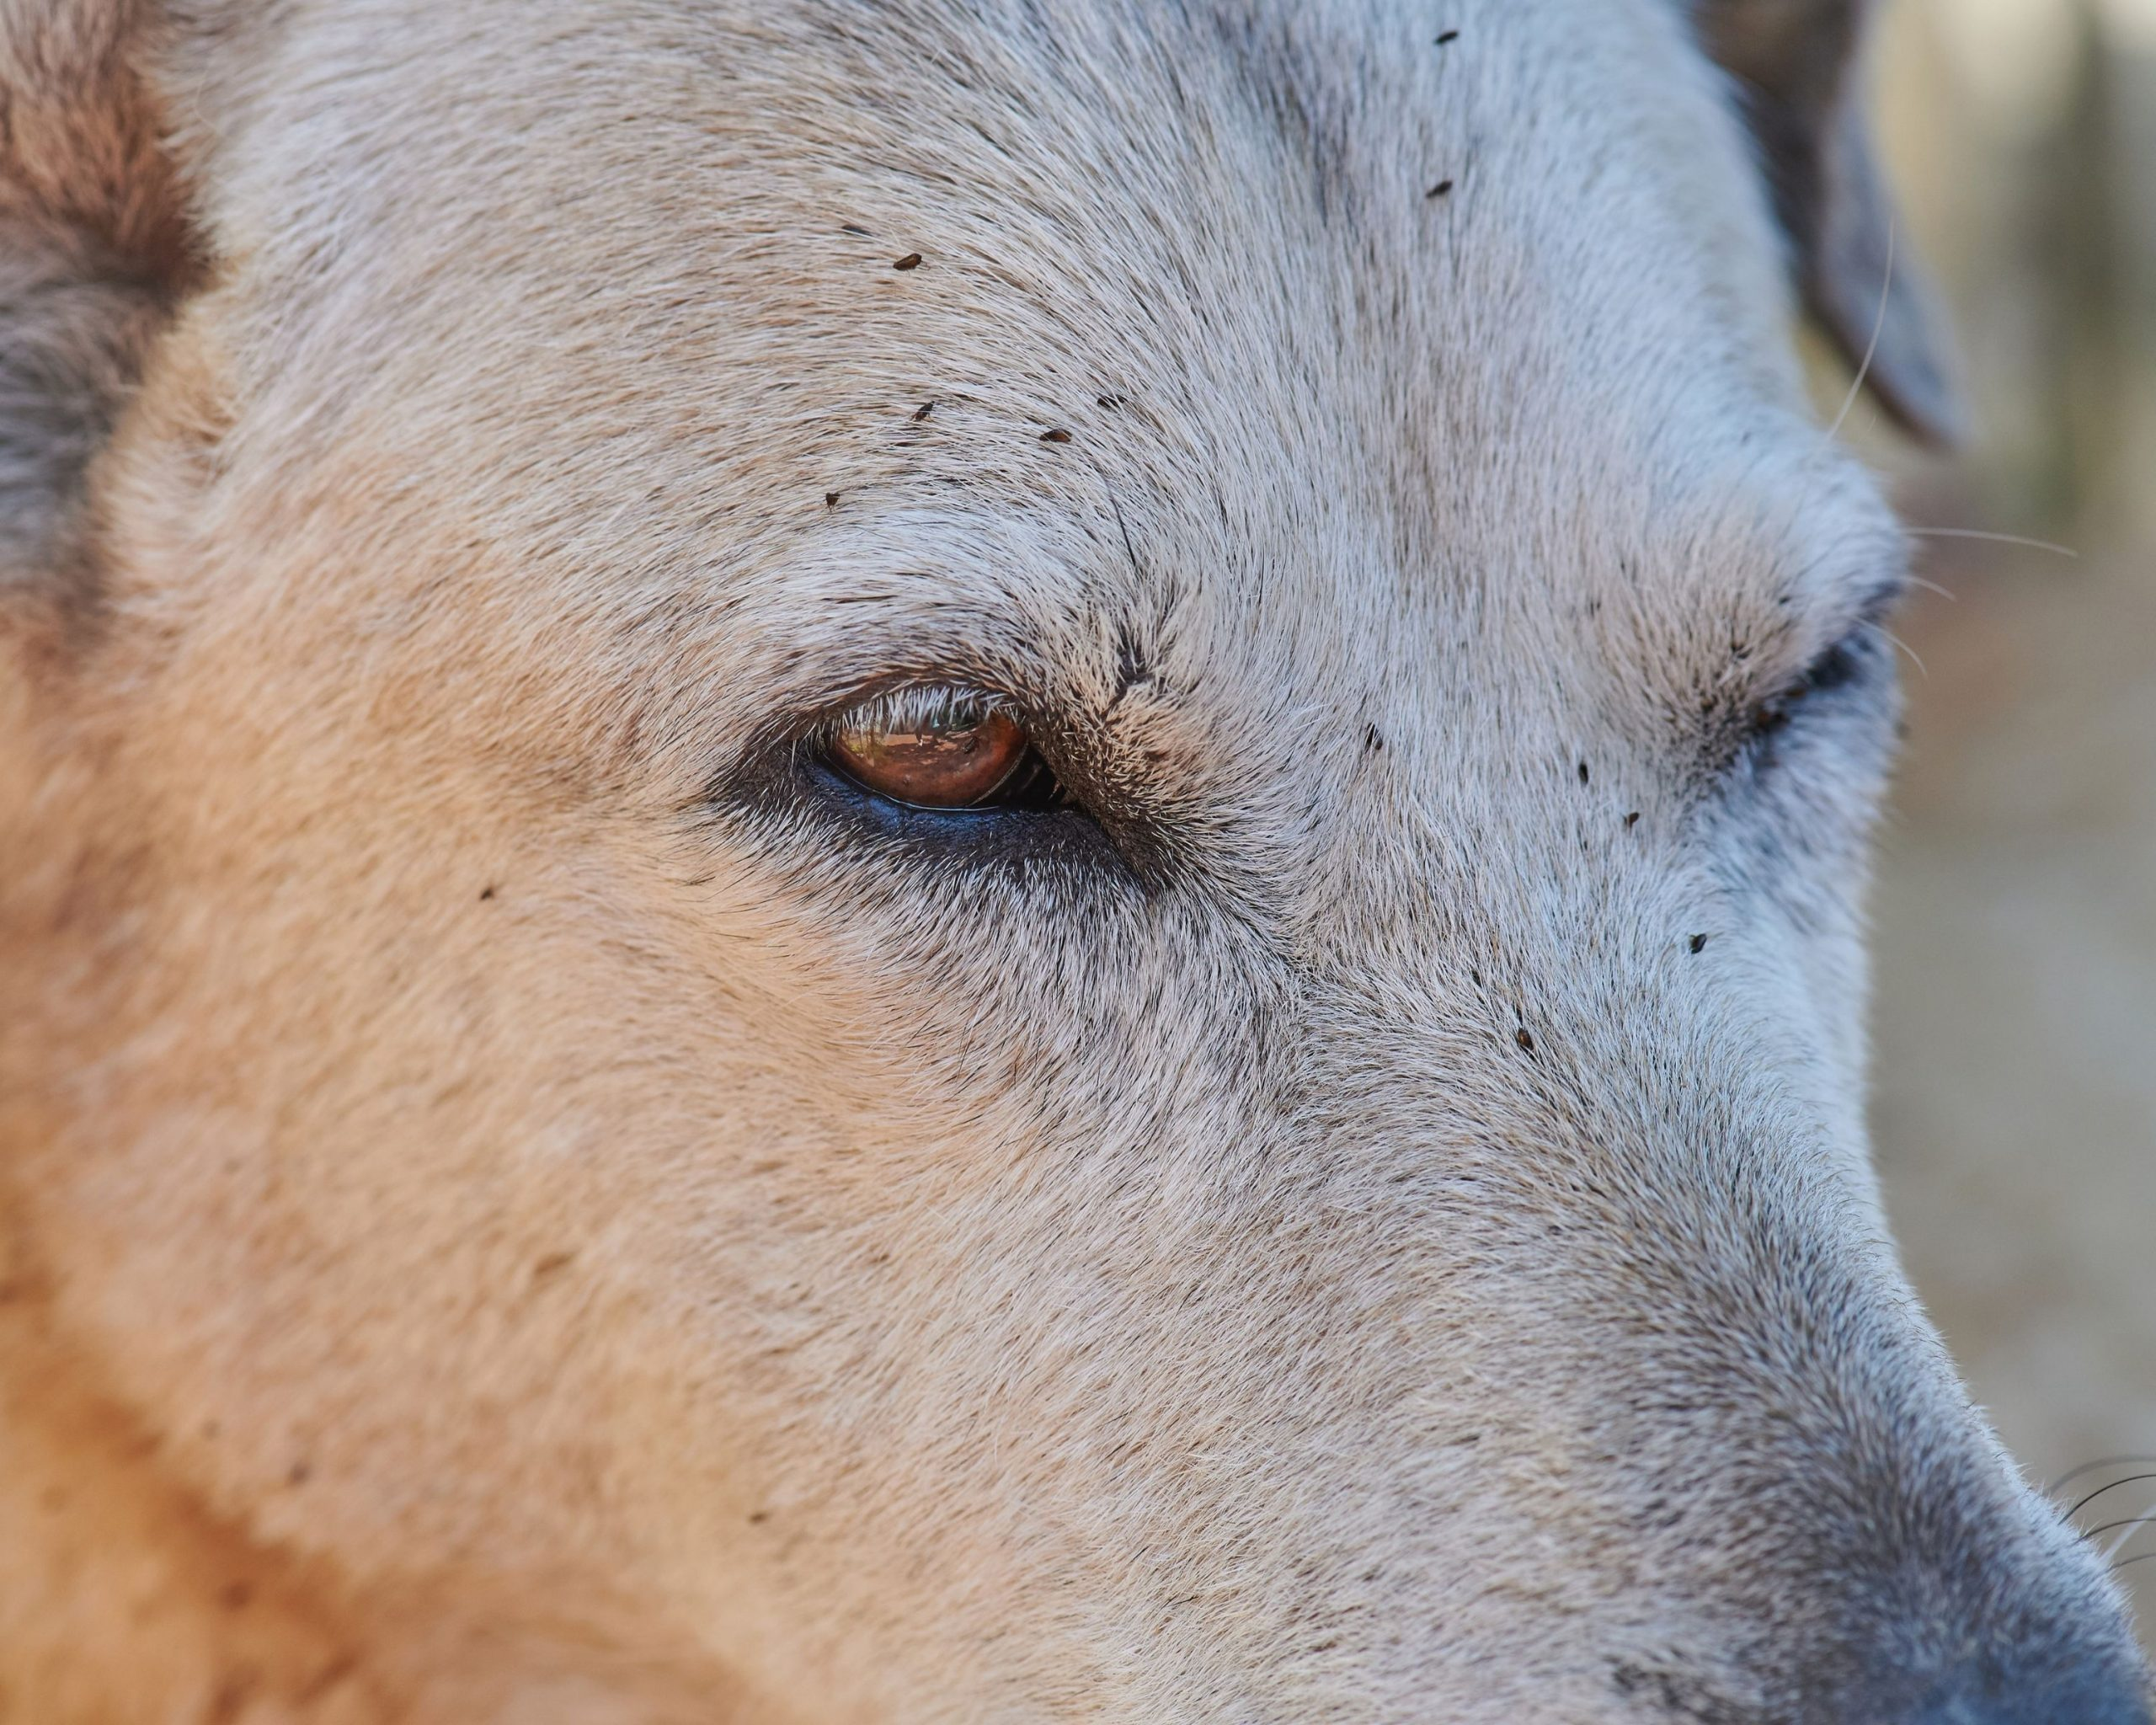 """Image of dog's face with a flea infestation for an article on PawPurity's website called """"What Fleas On Dogs Do to Jeopardize Dogs and Children"""""""